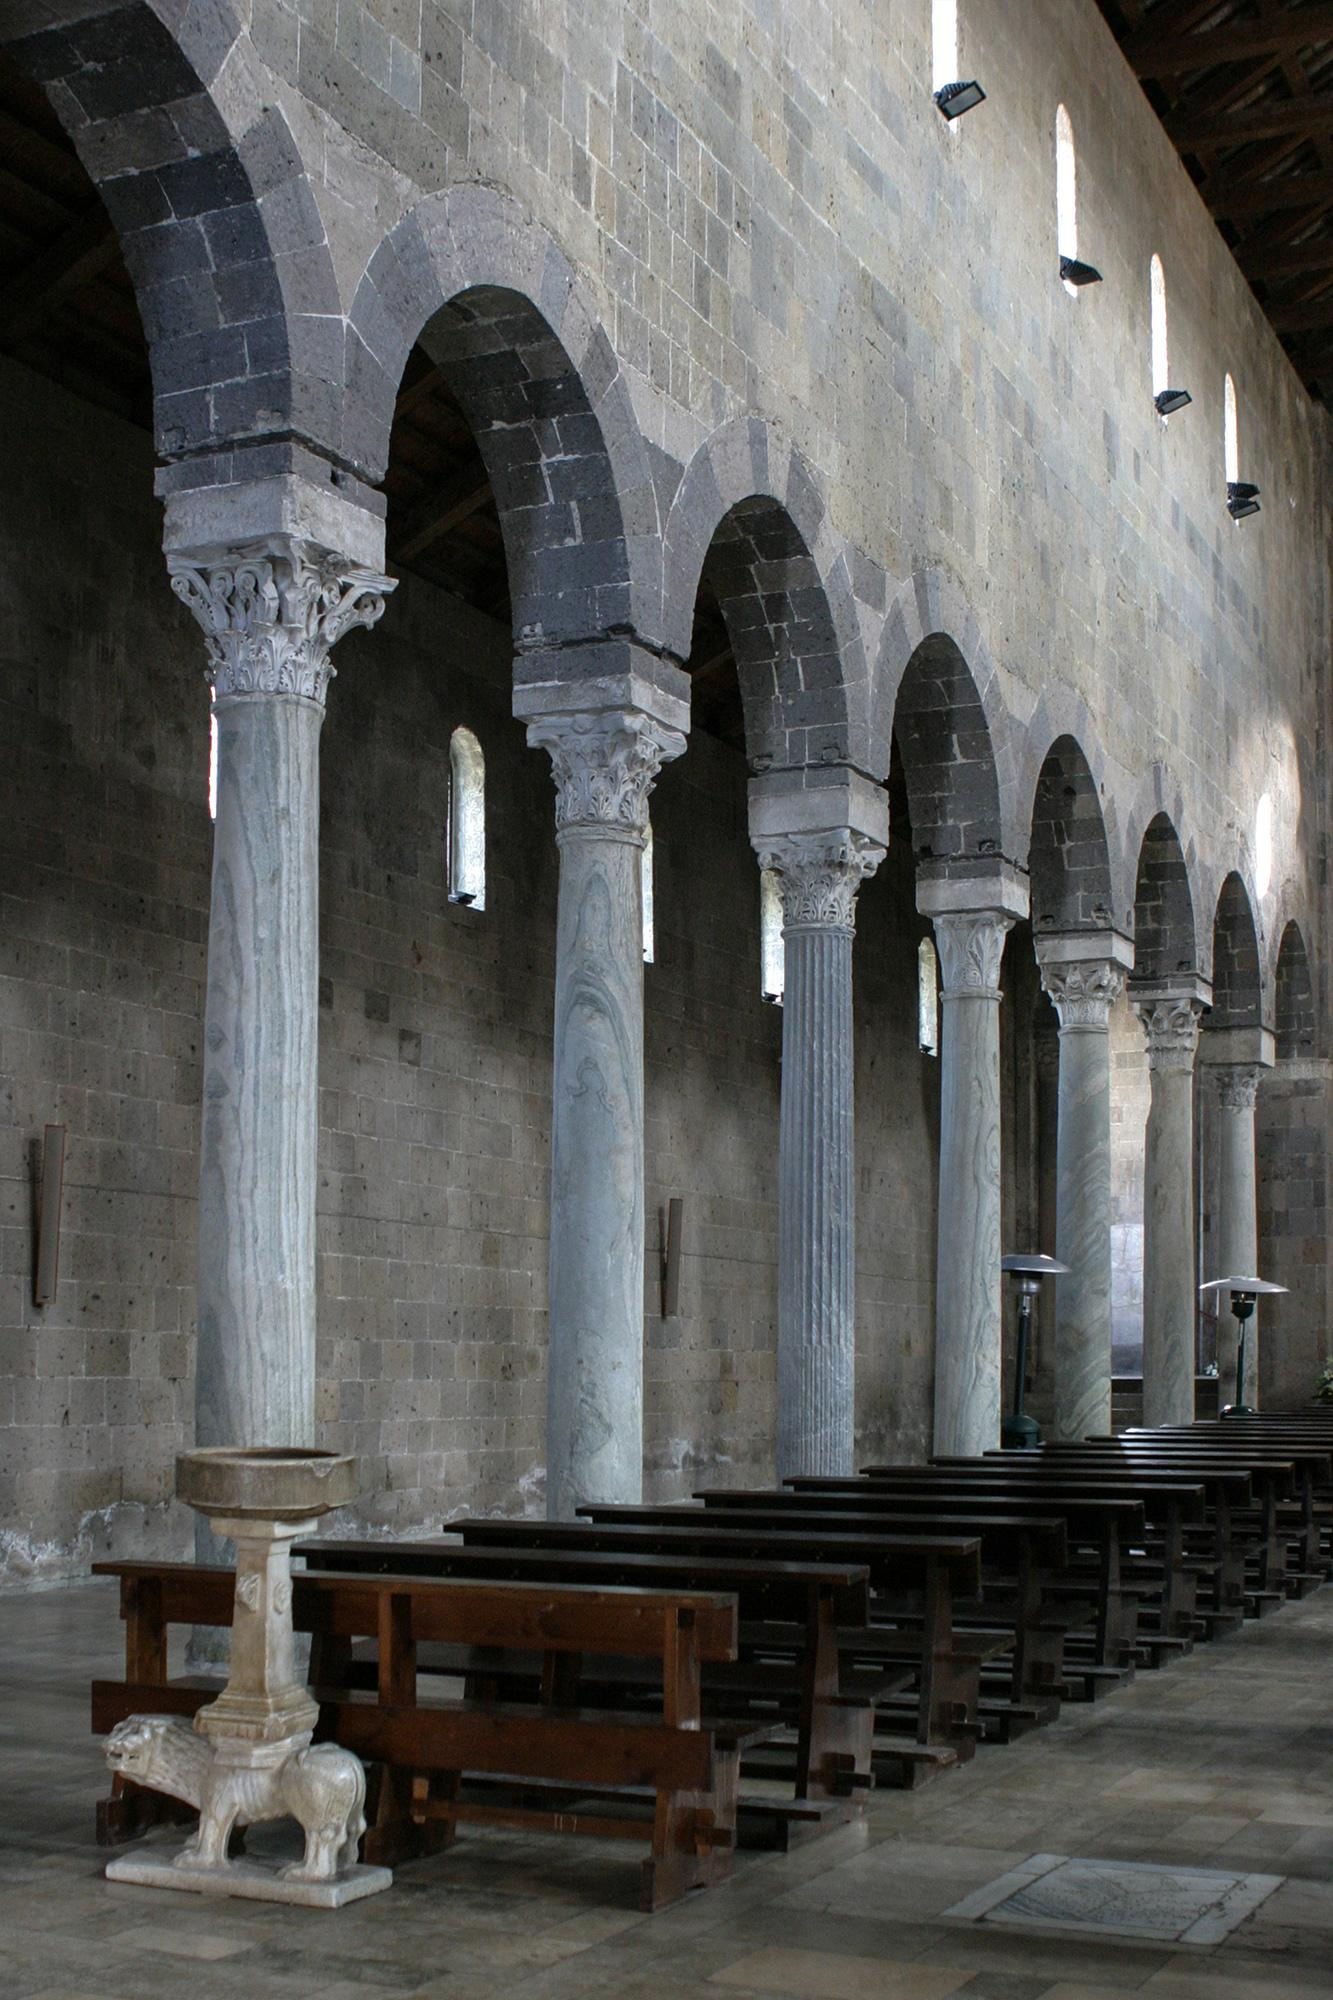 Columns and side aisle of the 12th century Basilica. – © Bruno Cristillo